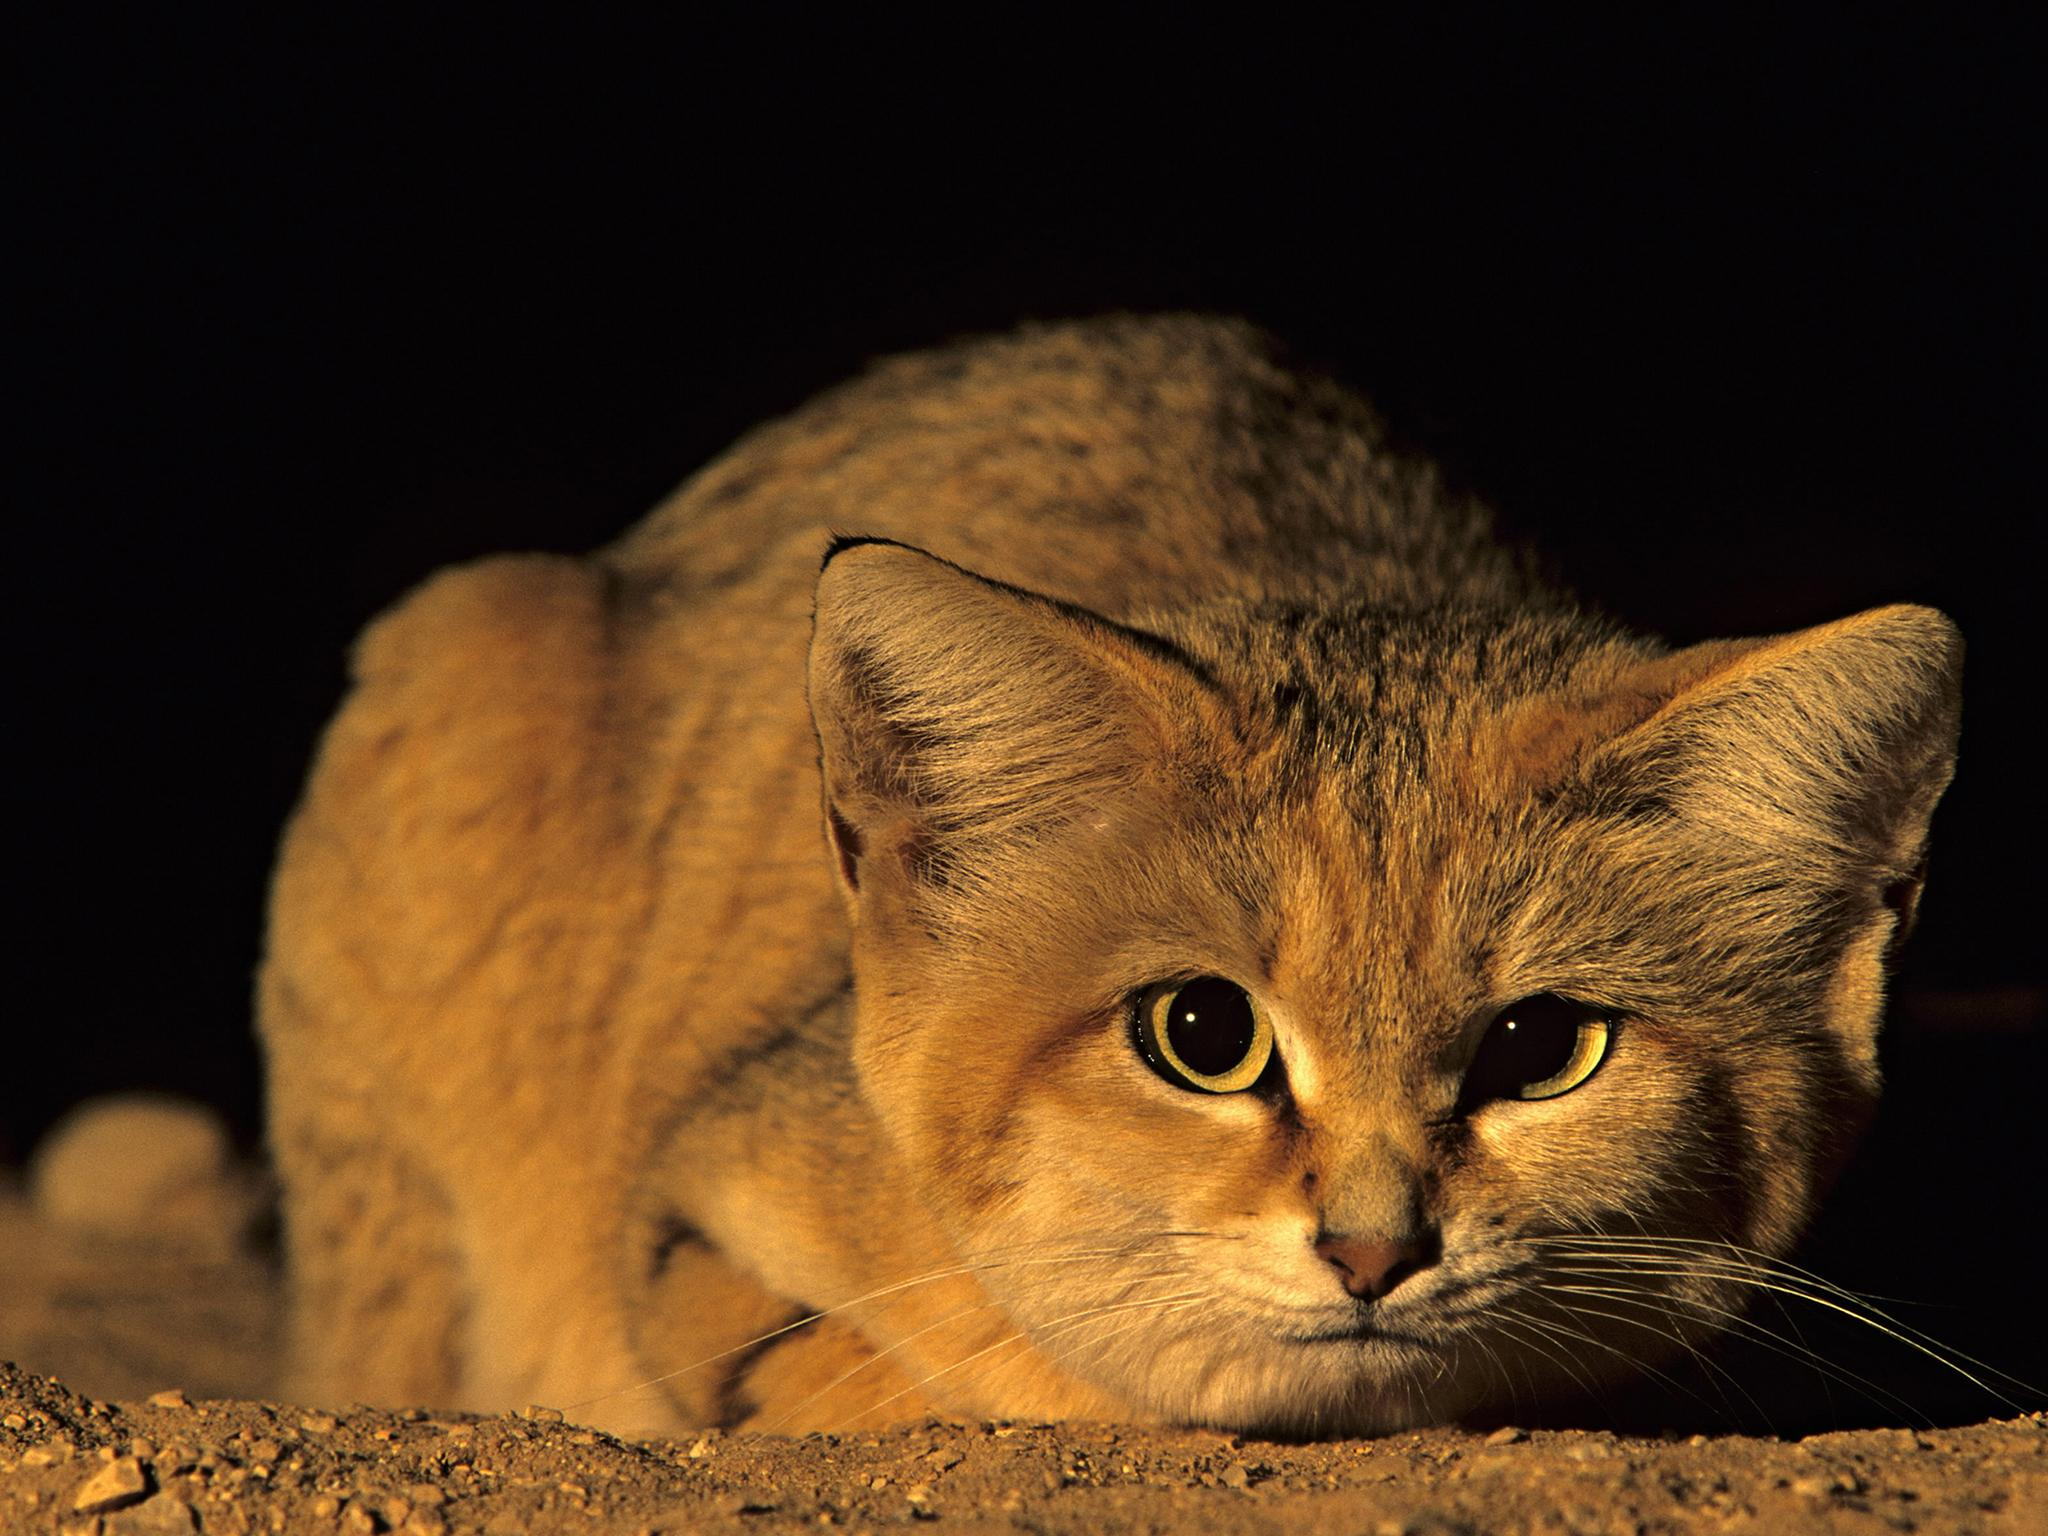 Sand Cat Wallpapers Animal Hq Sand Cat Pictures 4k Wallpapers 2019